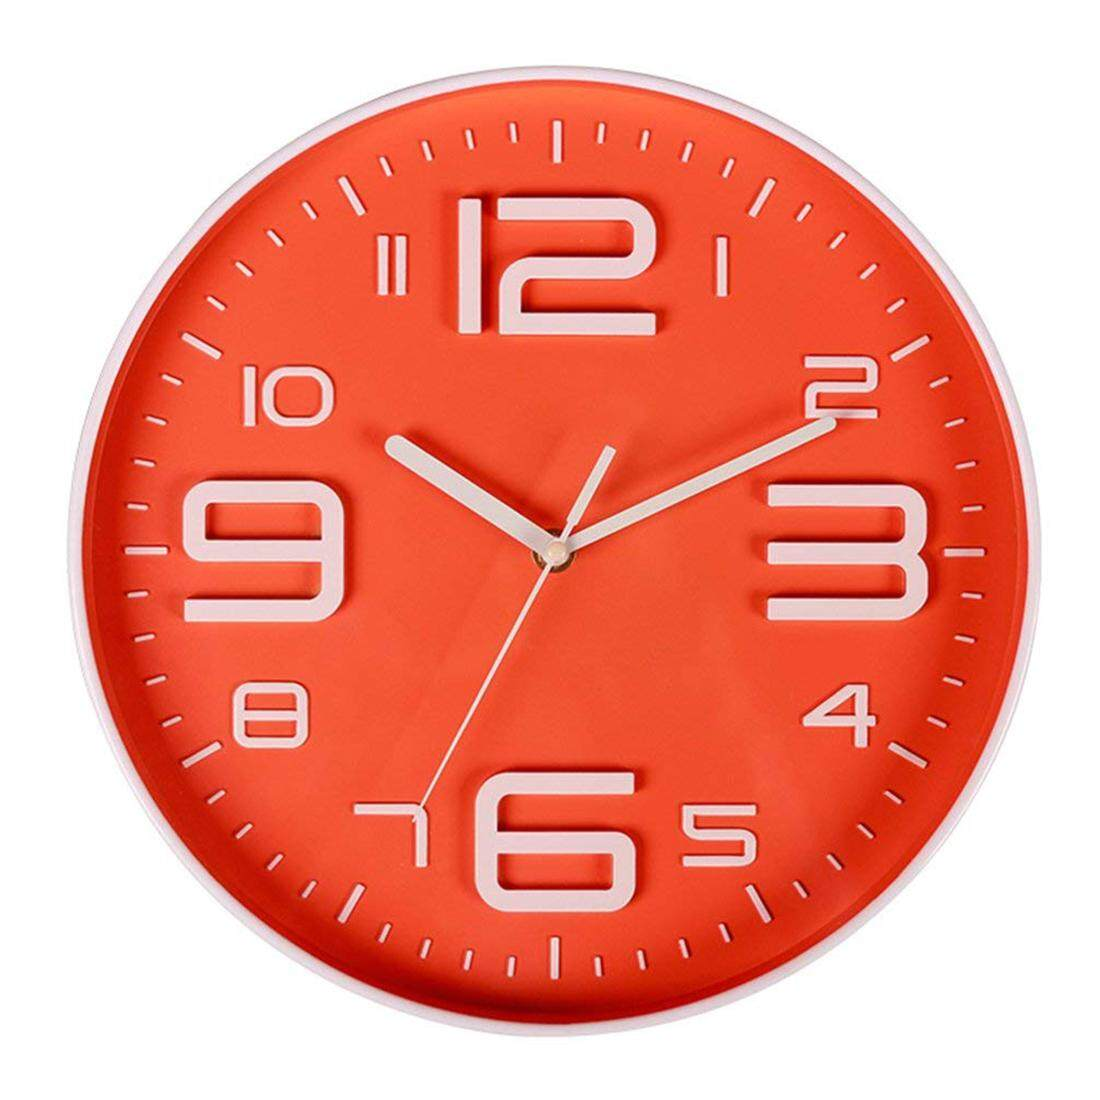 Indoor Big 3D Number Quartz Silent Non Ticking Wall Clock Quiet Sweep Movement Decorative Battery Operated 10 Inch Orange Free Shipping